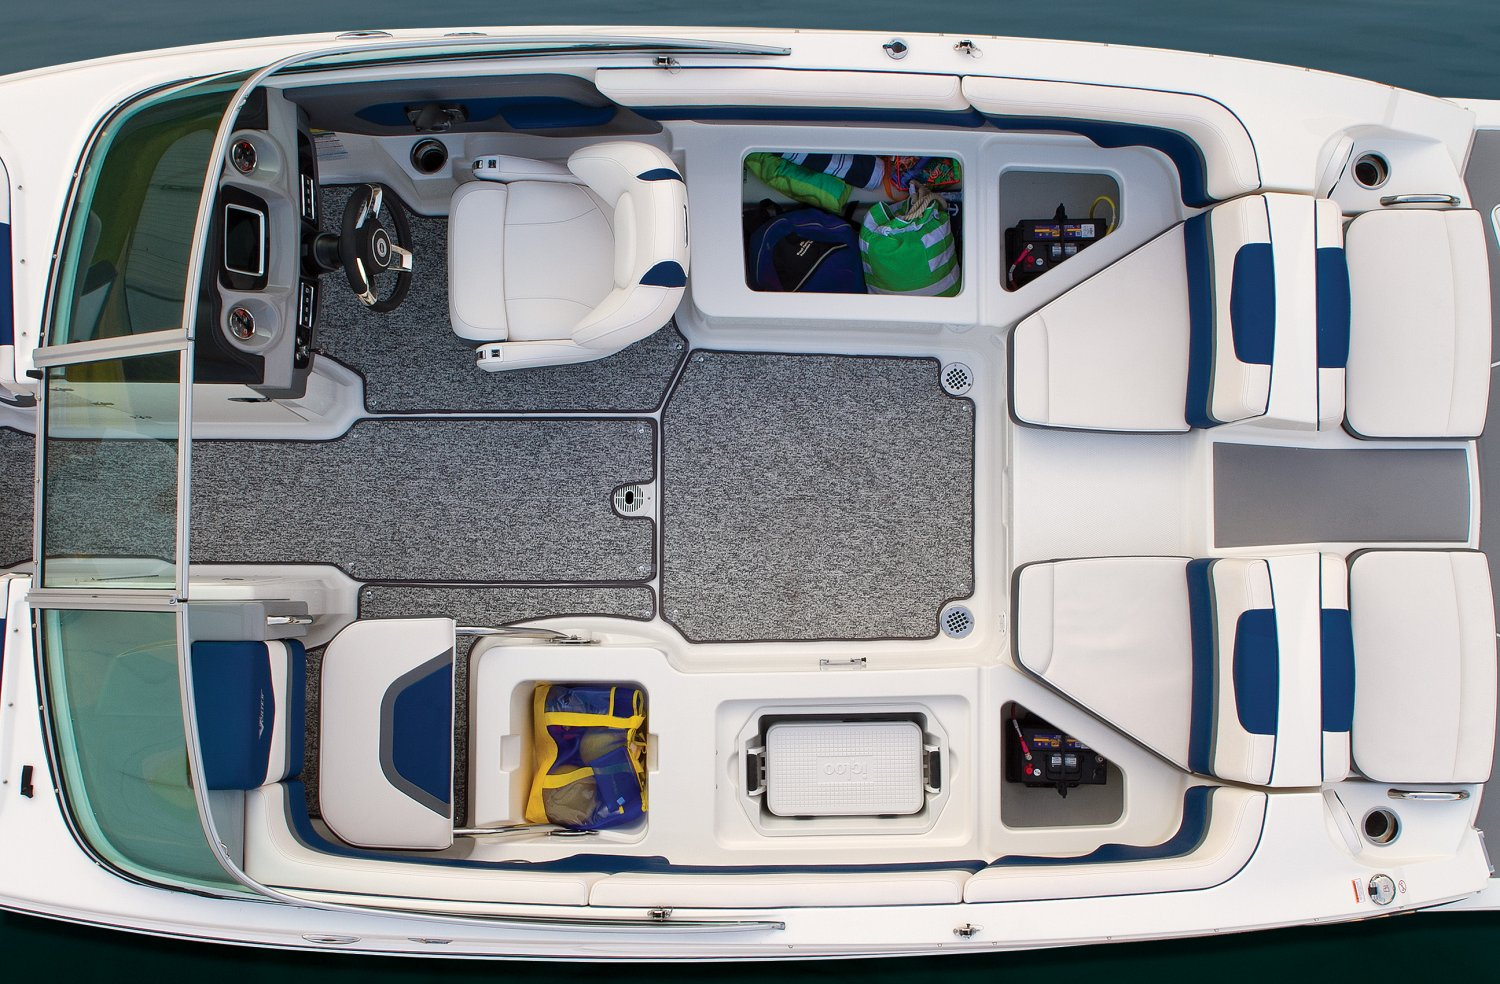 2016 Chaparral boat for sale, model of the boat is 223 VORTEX VR & Image # 4 of 25